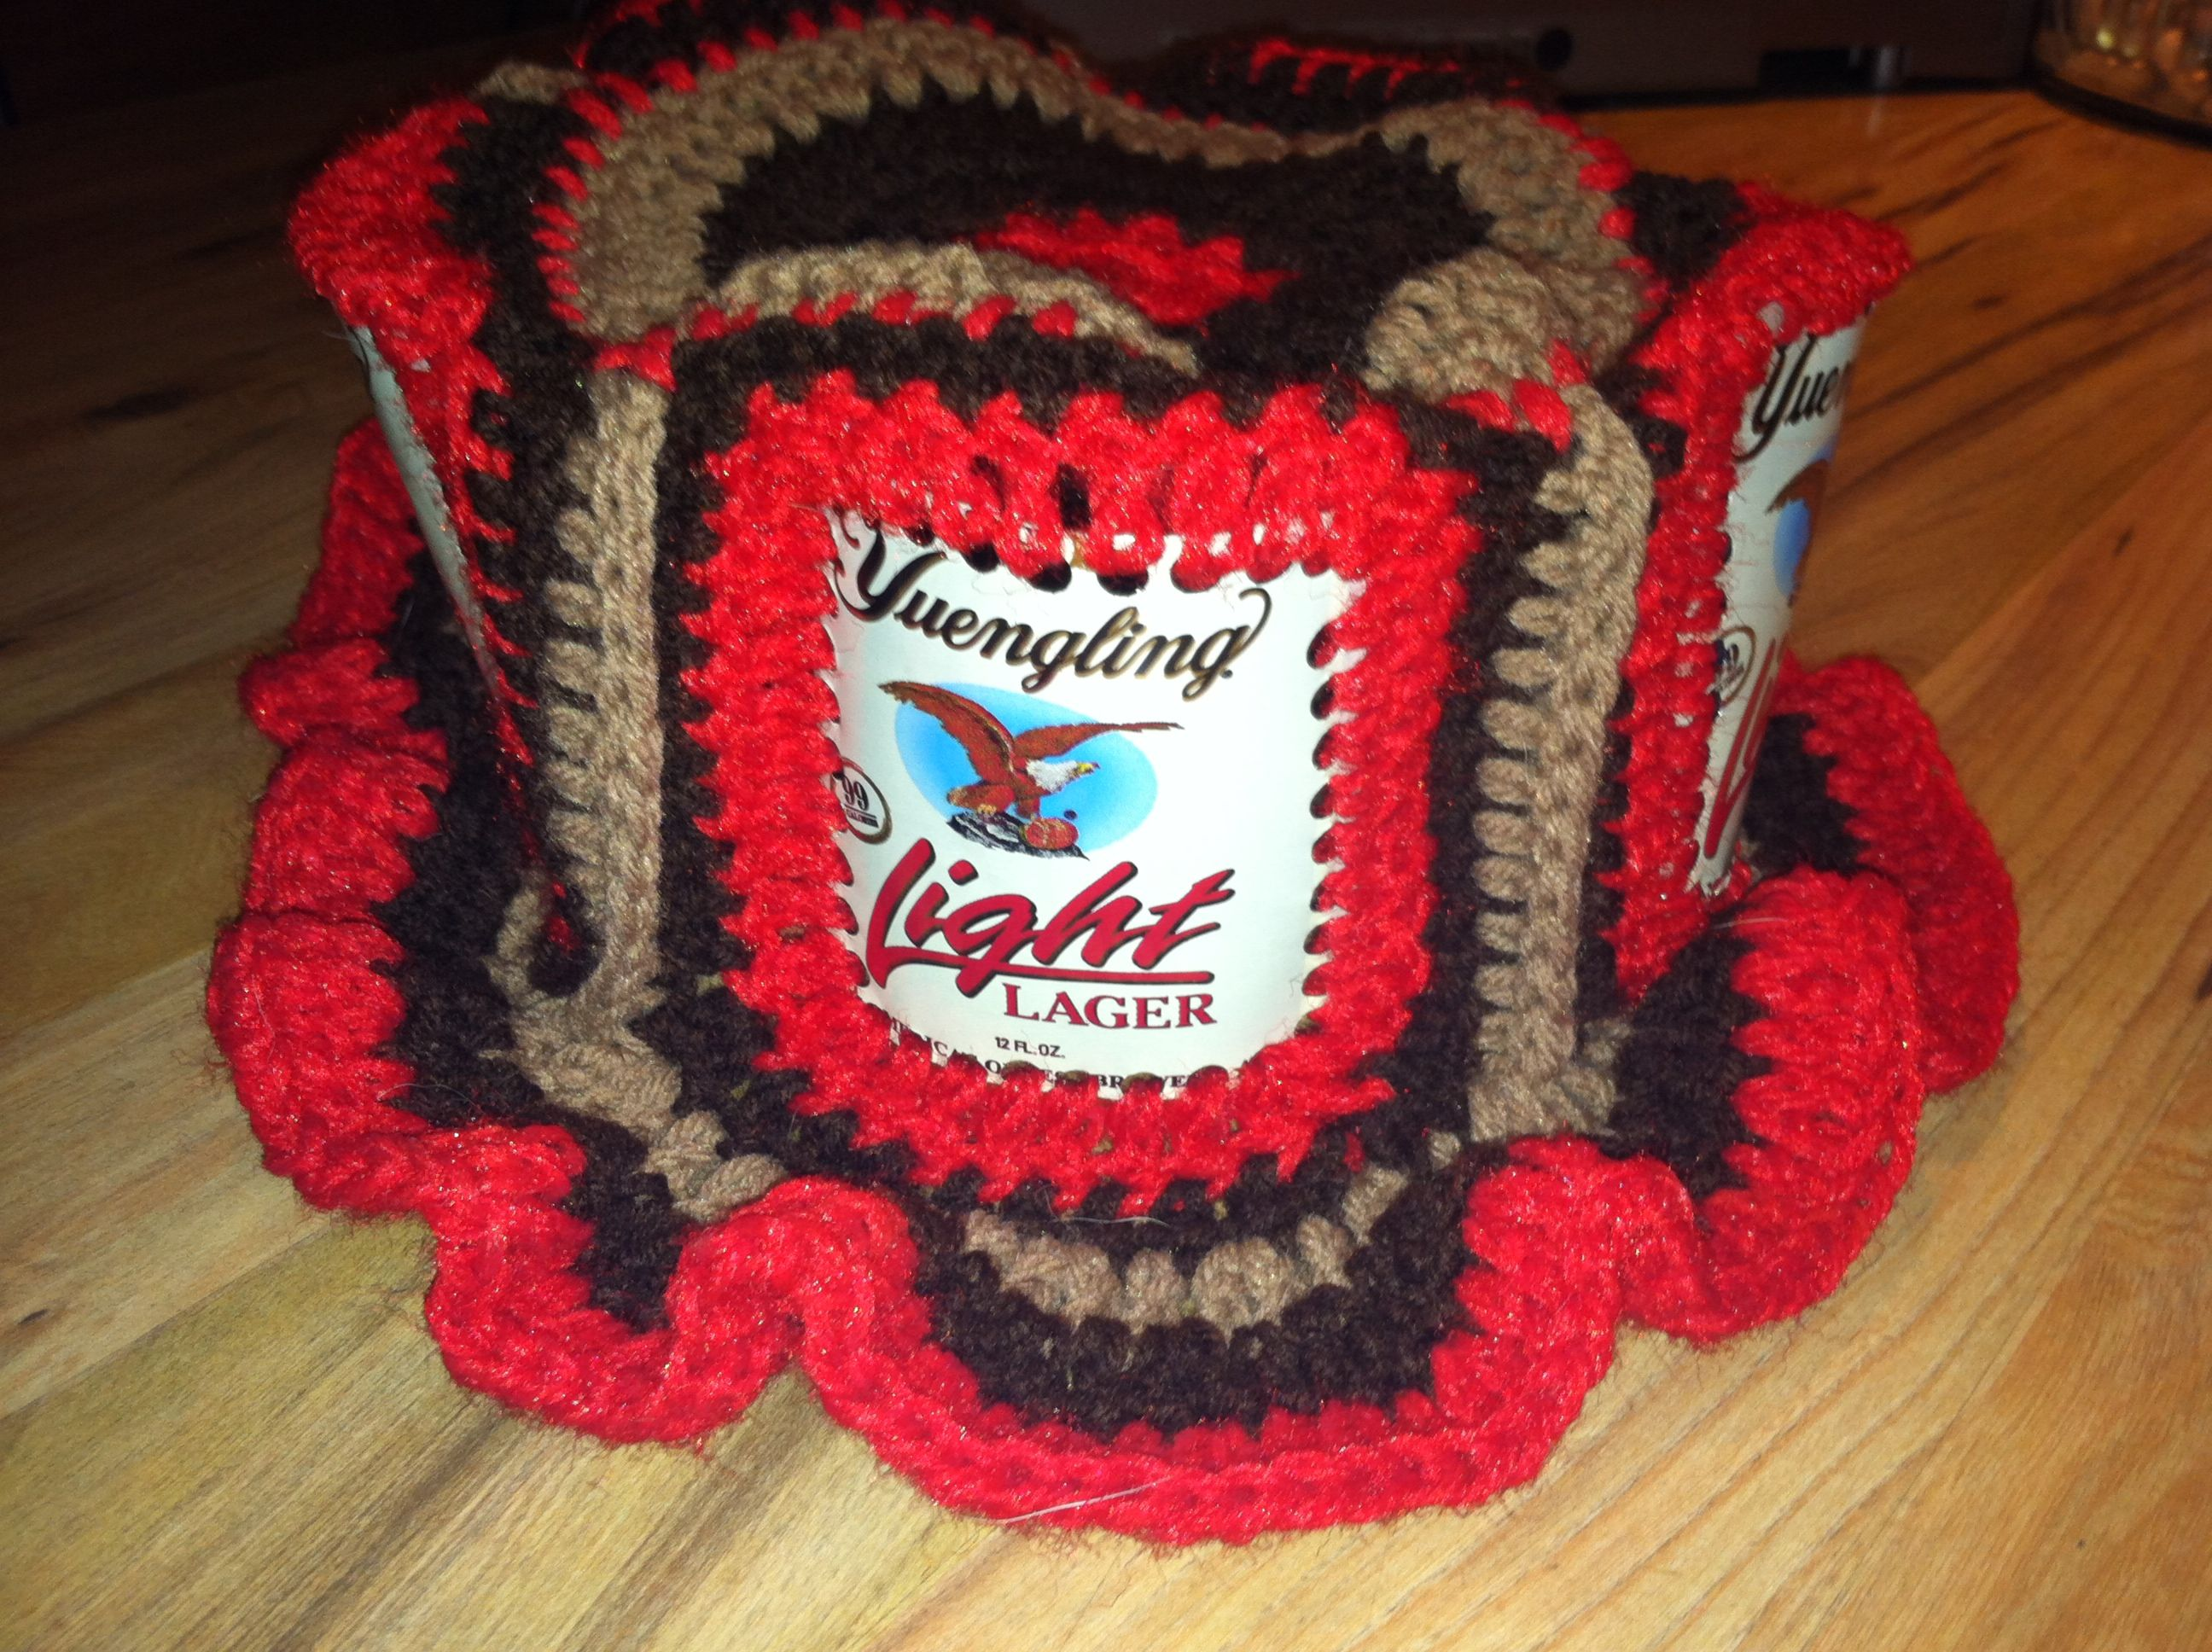 0ba5a5f569f This is the Yengling Beer can hat I Made. (sorry if I spelled the beer name  wrong). Crocheted beer cans together